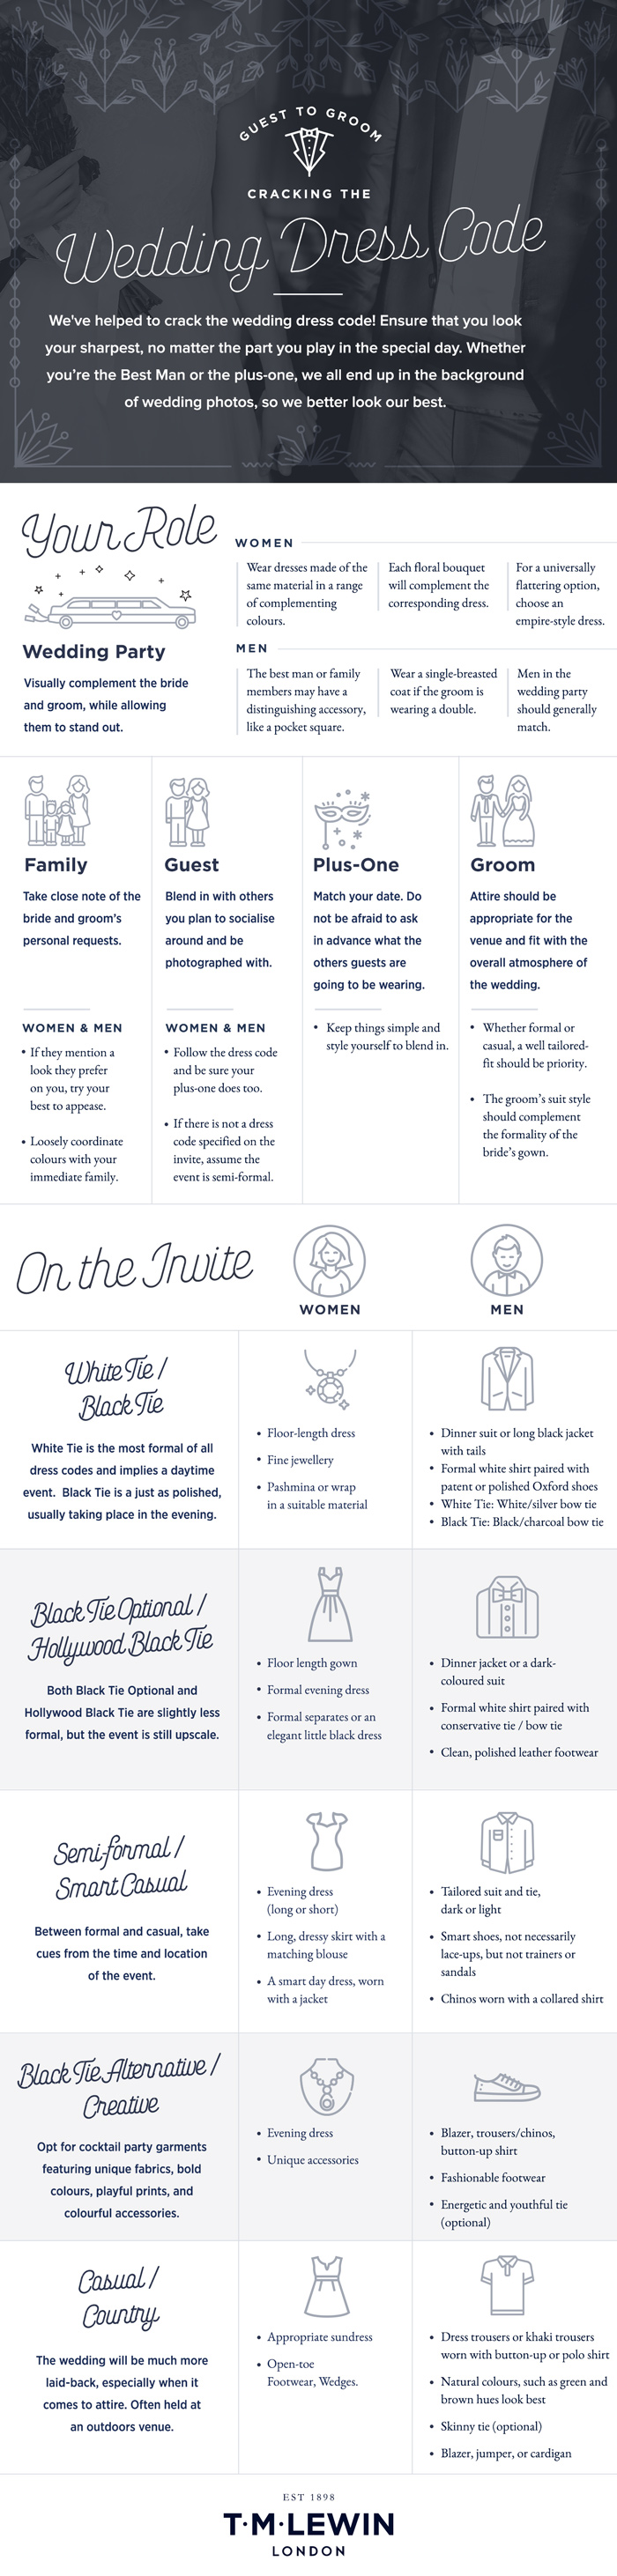 Wedding Guest Guidelines: Navigating What to Wear & When [Infographic]